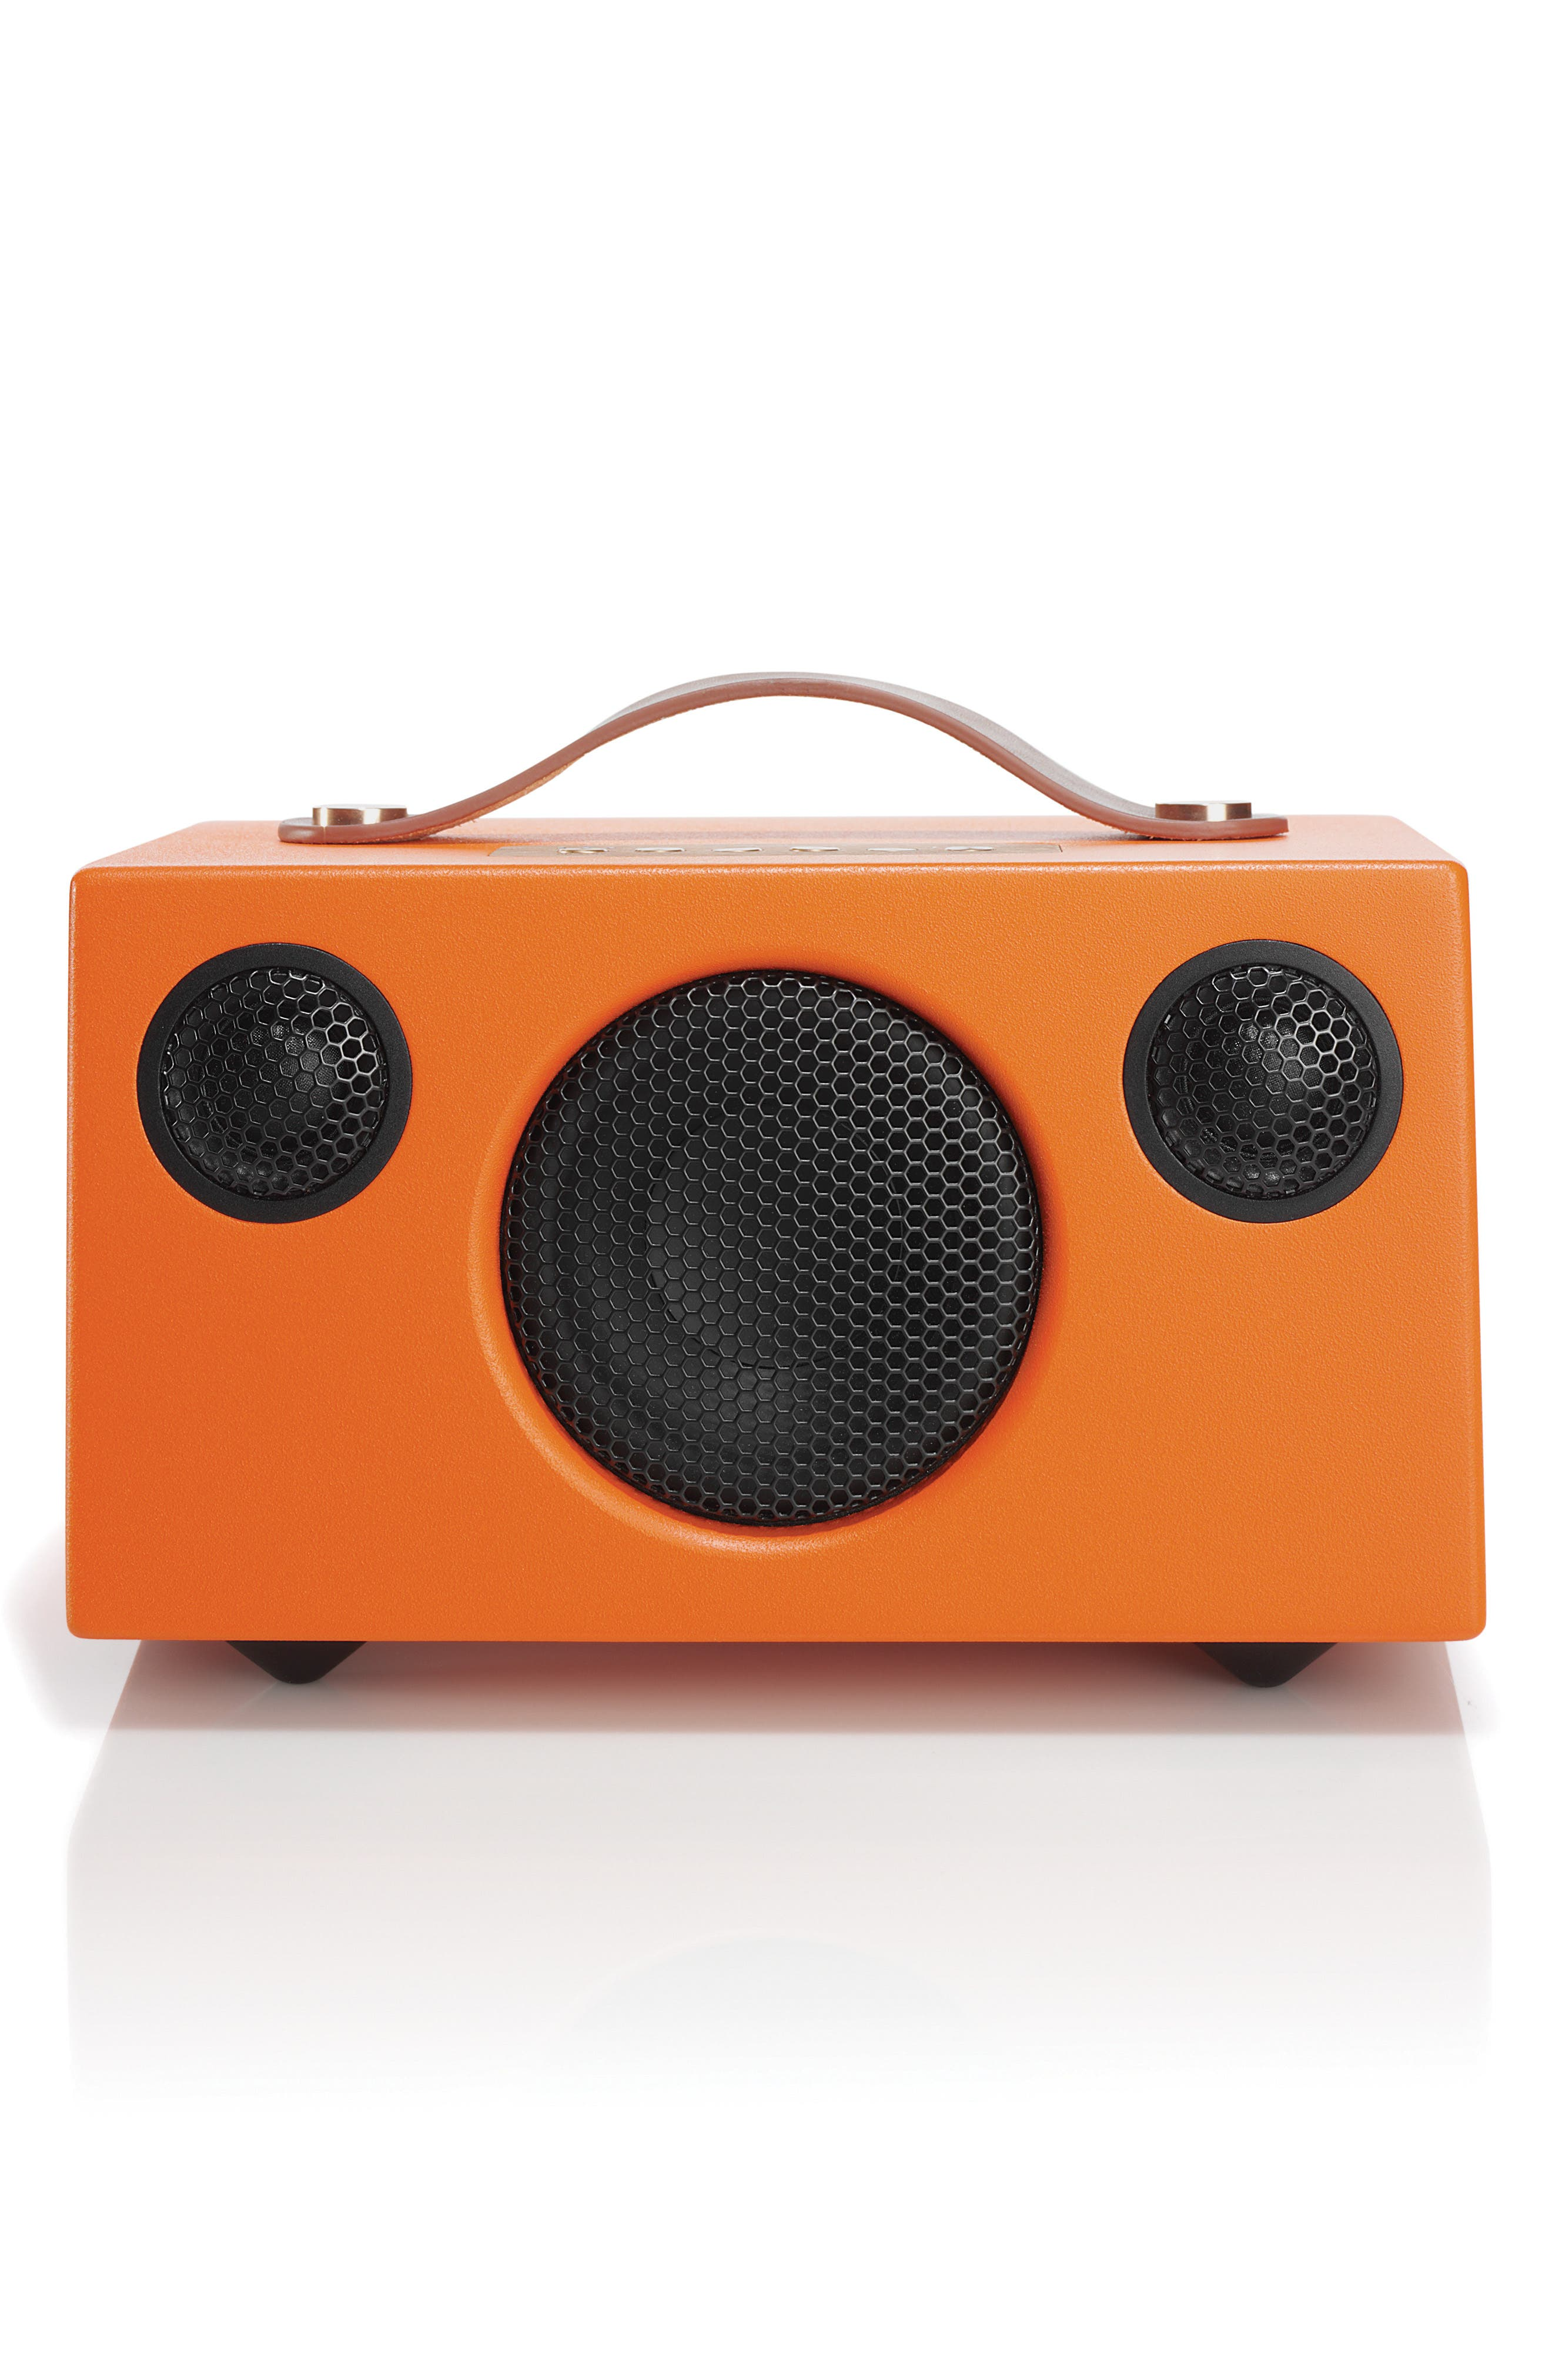 Main Image - Audio Pro Addon T3 Portable Speaker